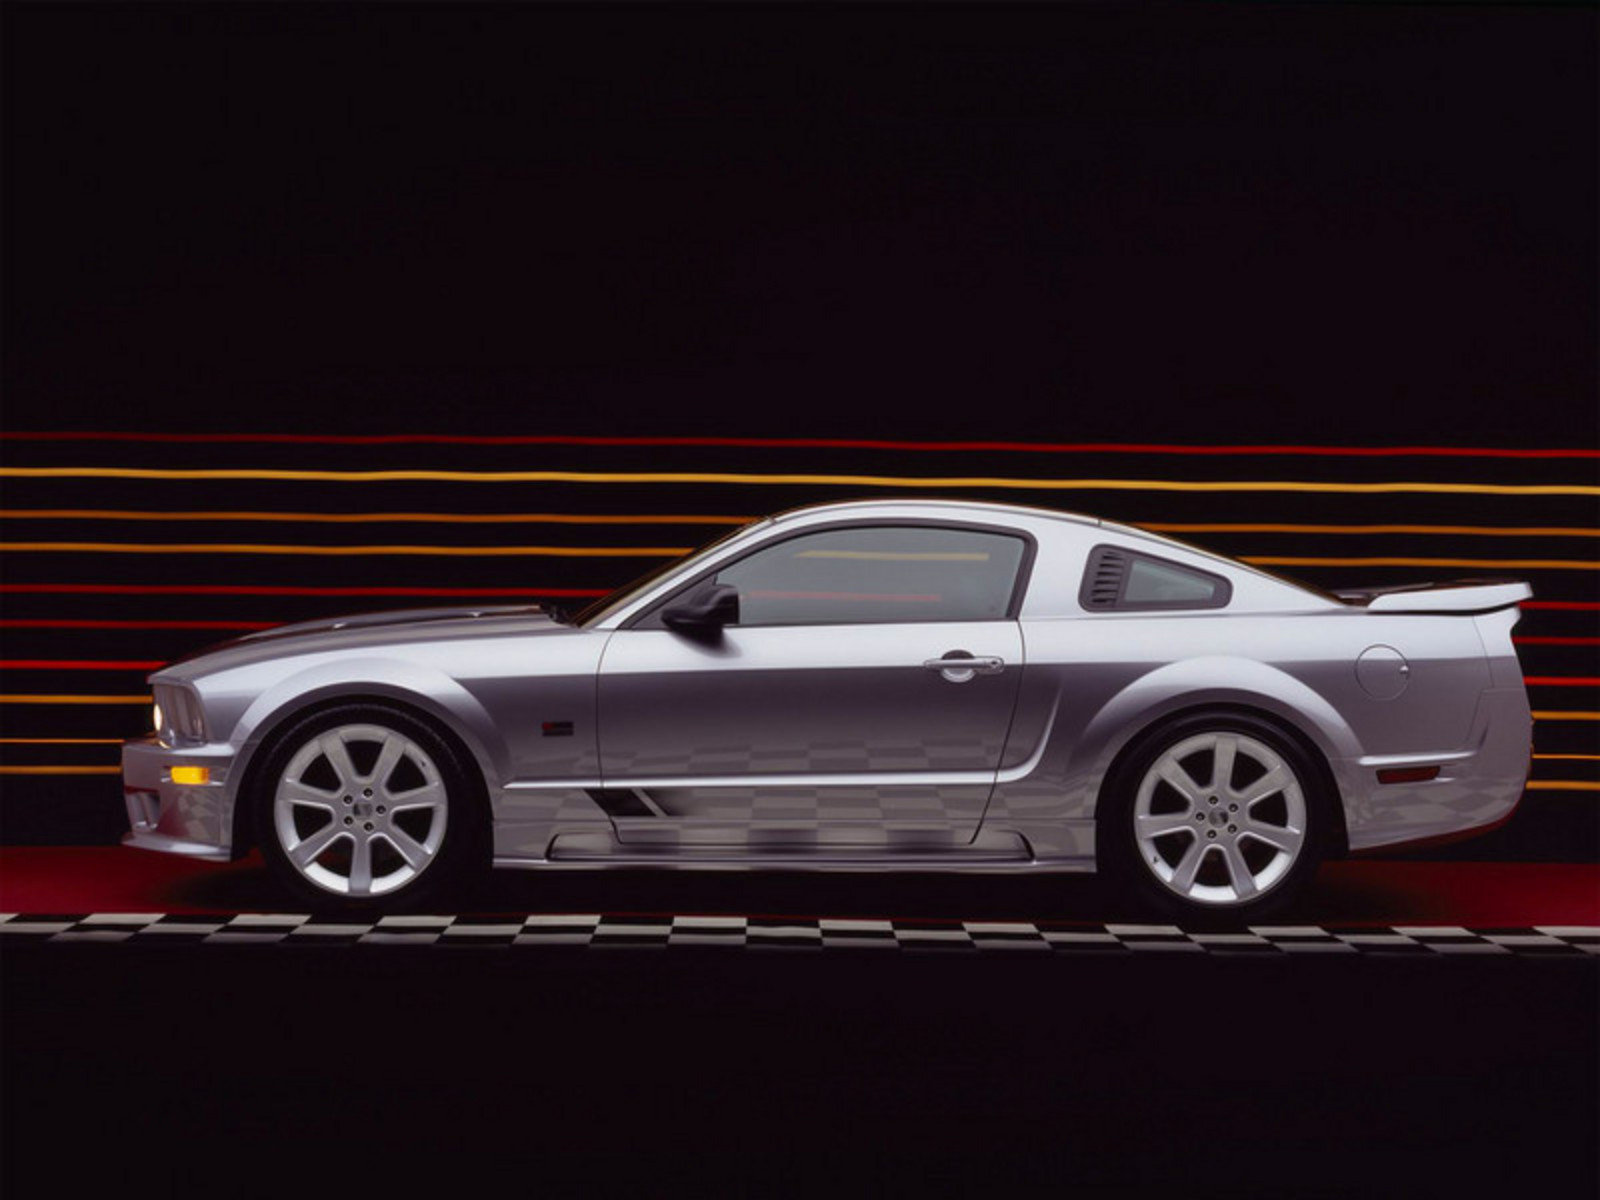 2005 Saleen S281 Mustang Picture 49511 Car Review